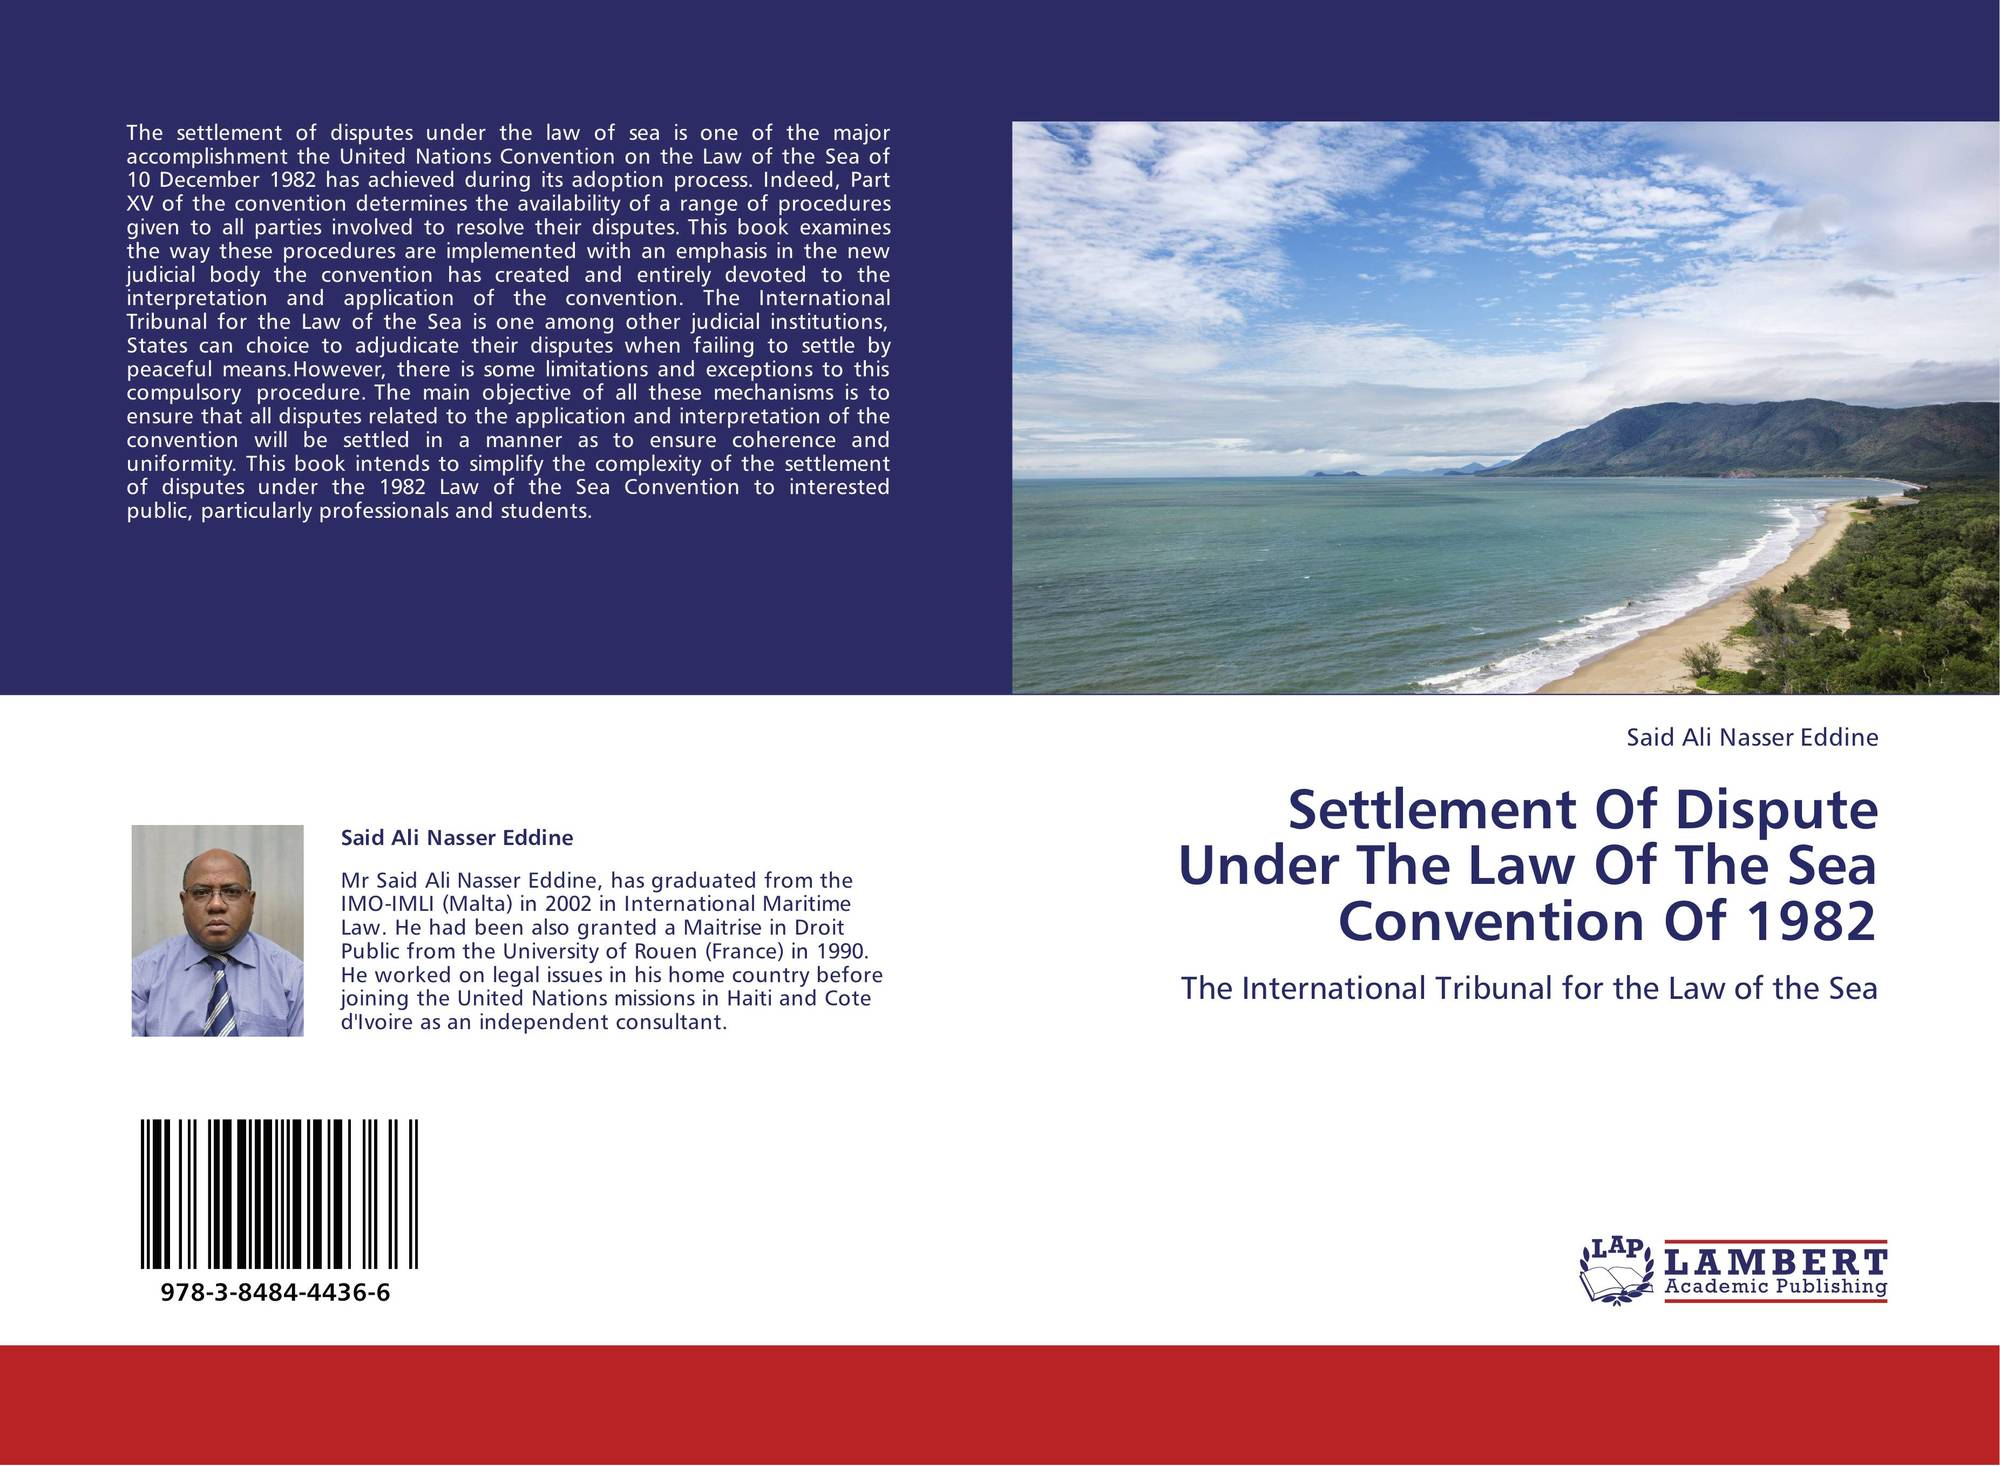 Law Of The Sea Convention 1982 9783848444366